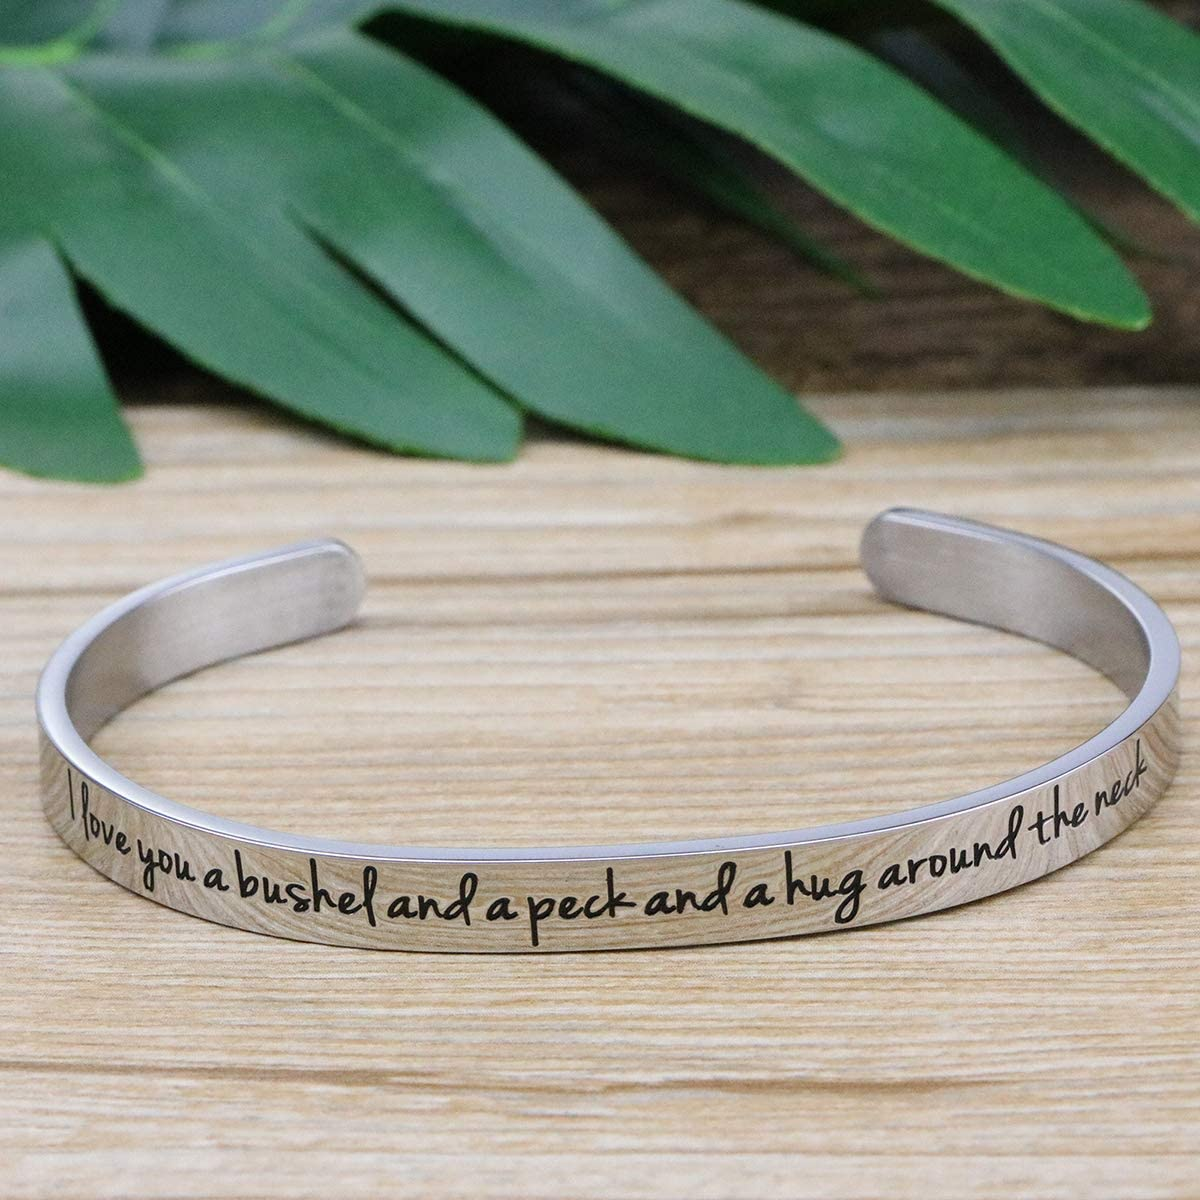 Awegift Memorial Jewelry Remembrance Loss of Mom Dad Father Mother Necklace Bracelet Sympathy Gift